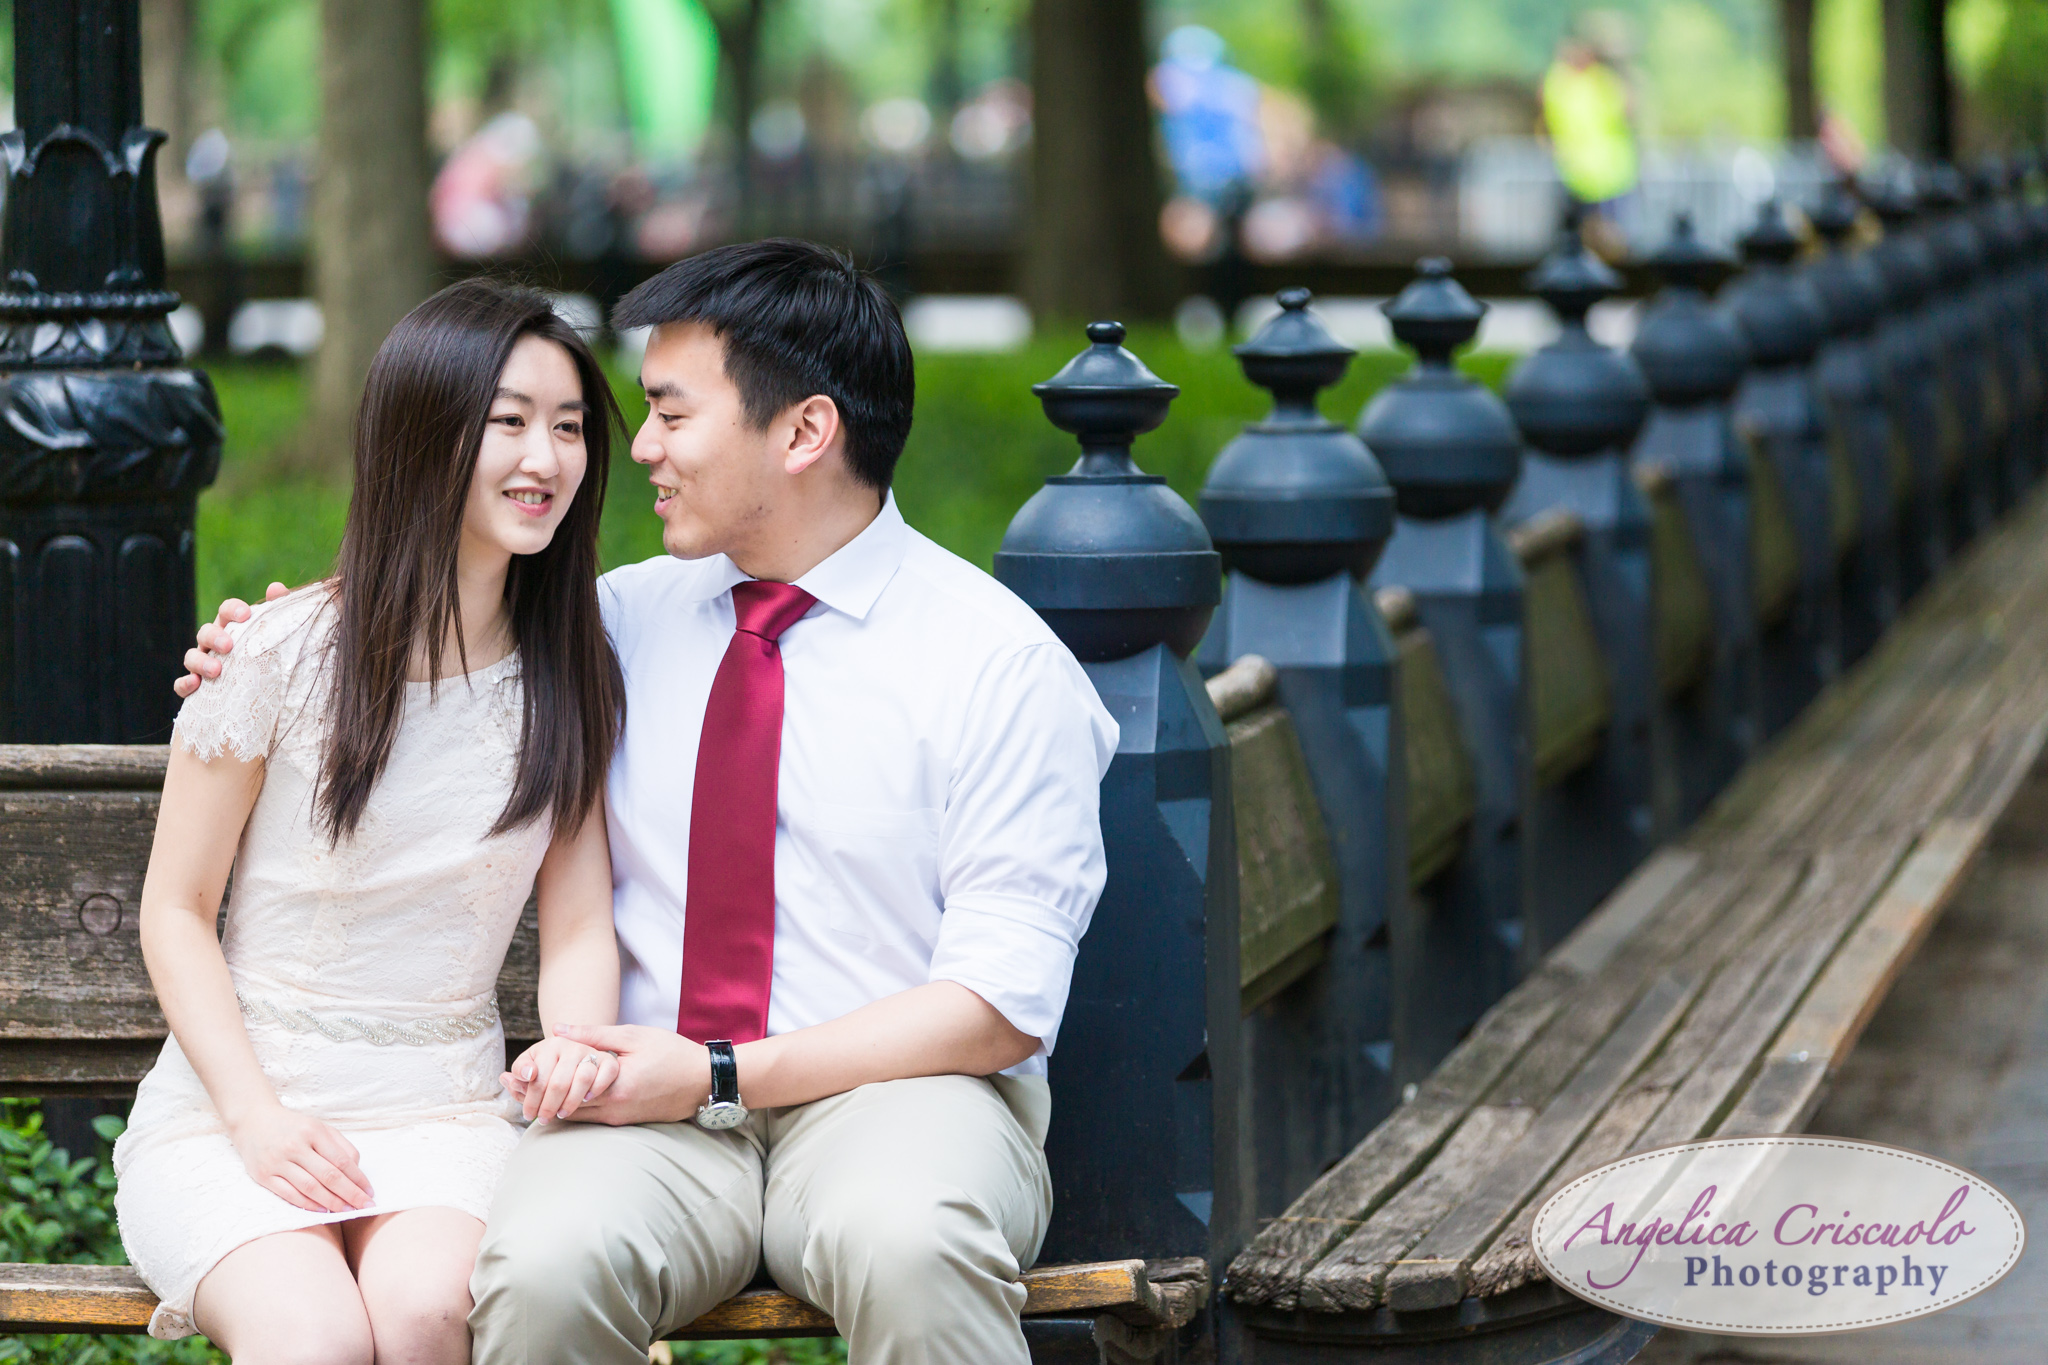 Engagement-Photographers-NYC-Central-Park-Photo-Ideas-143